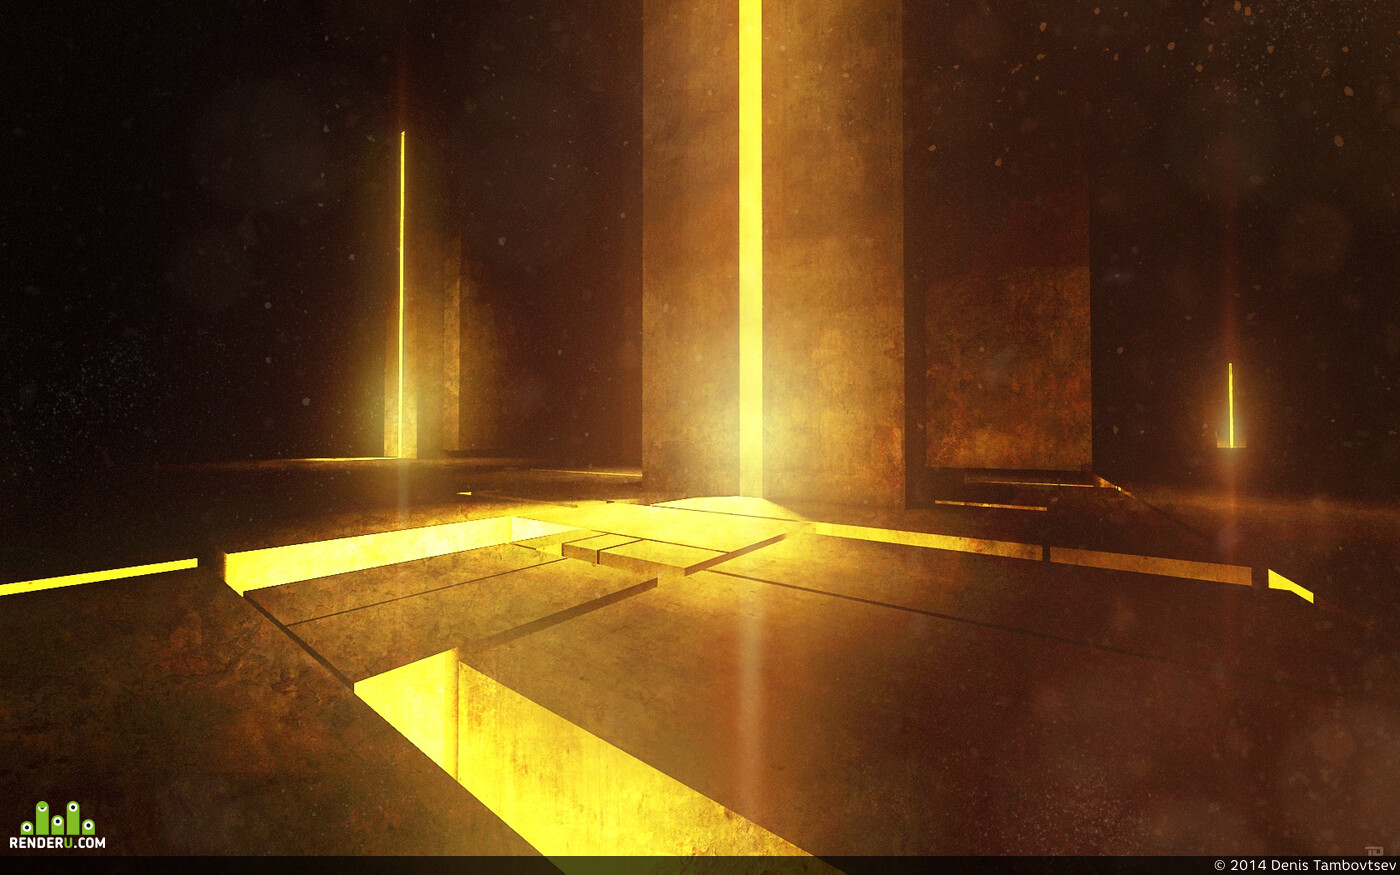 Environments, Science Fiction, game art, game, adventure, Level design, Concepts, game level